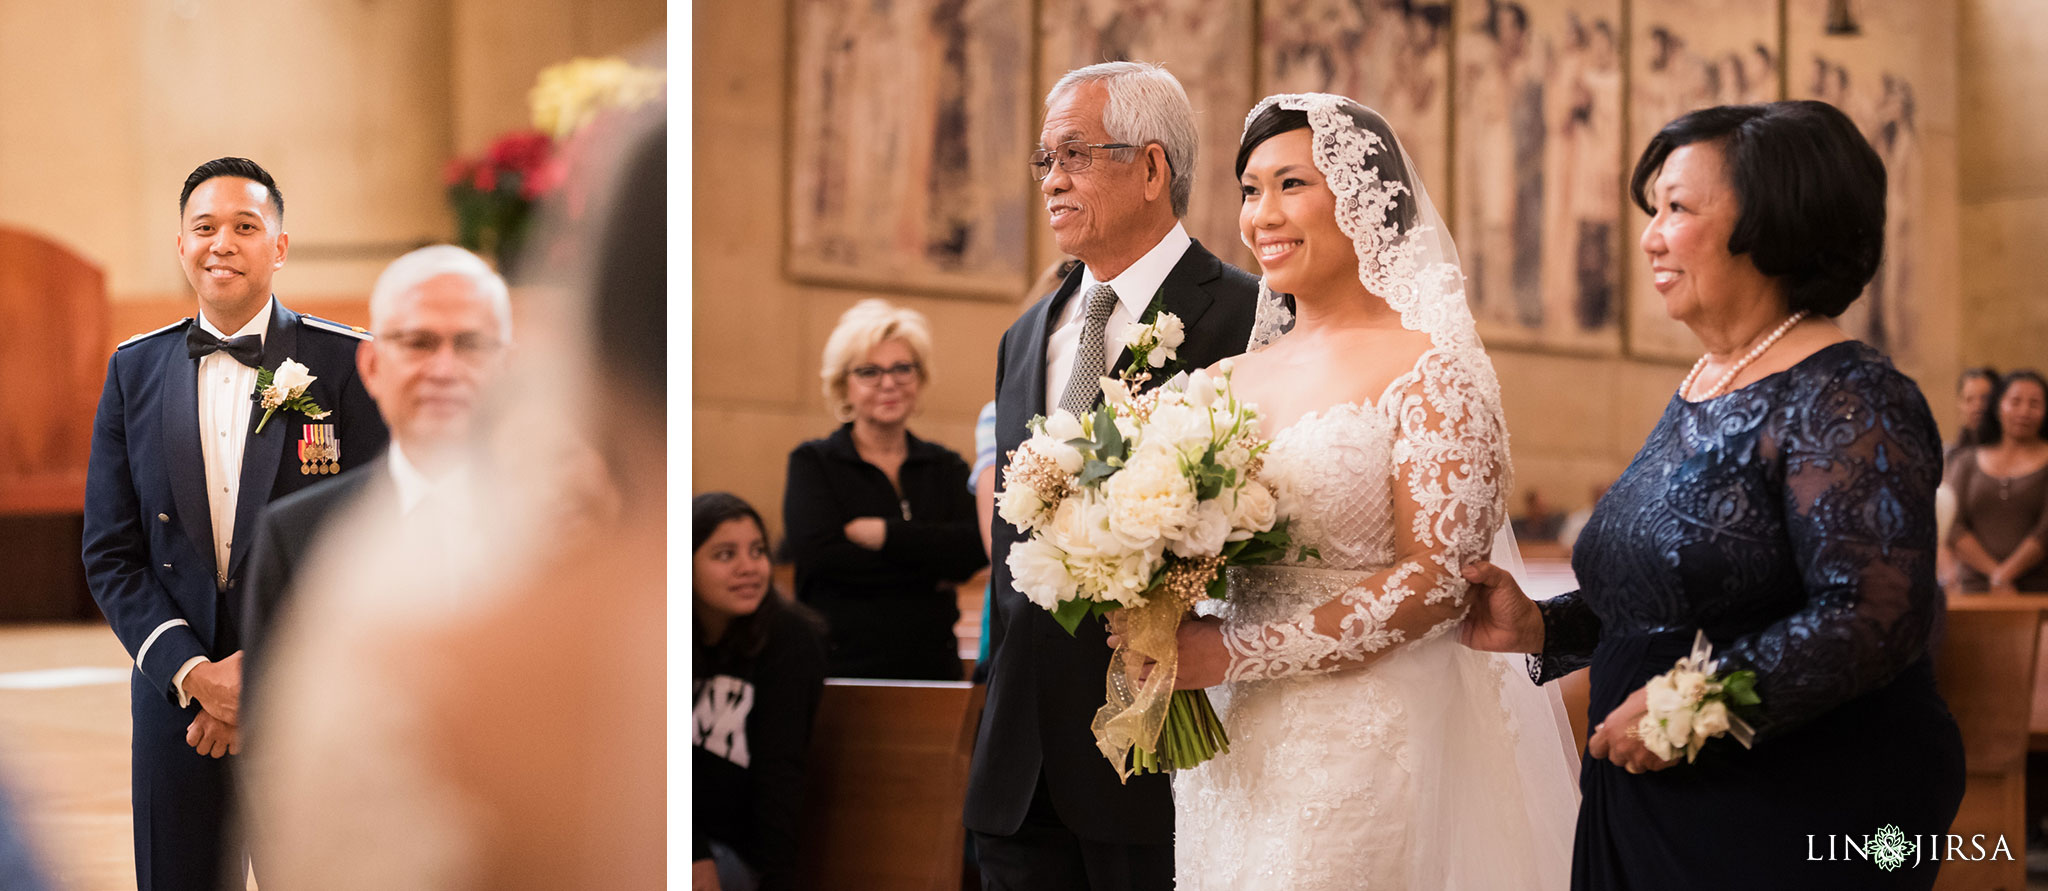 18 cathedral of our lady of angels wedding ceremony photography